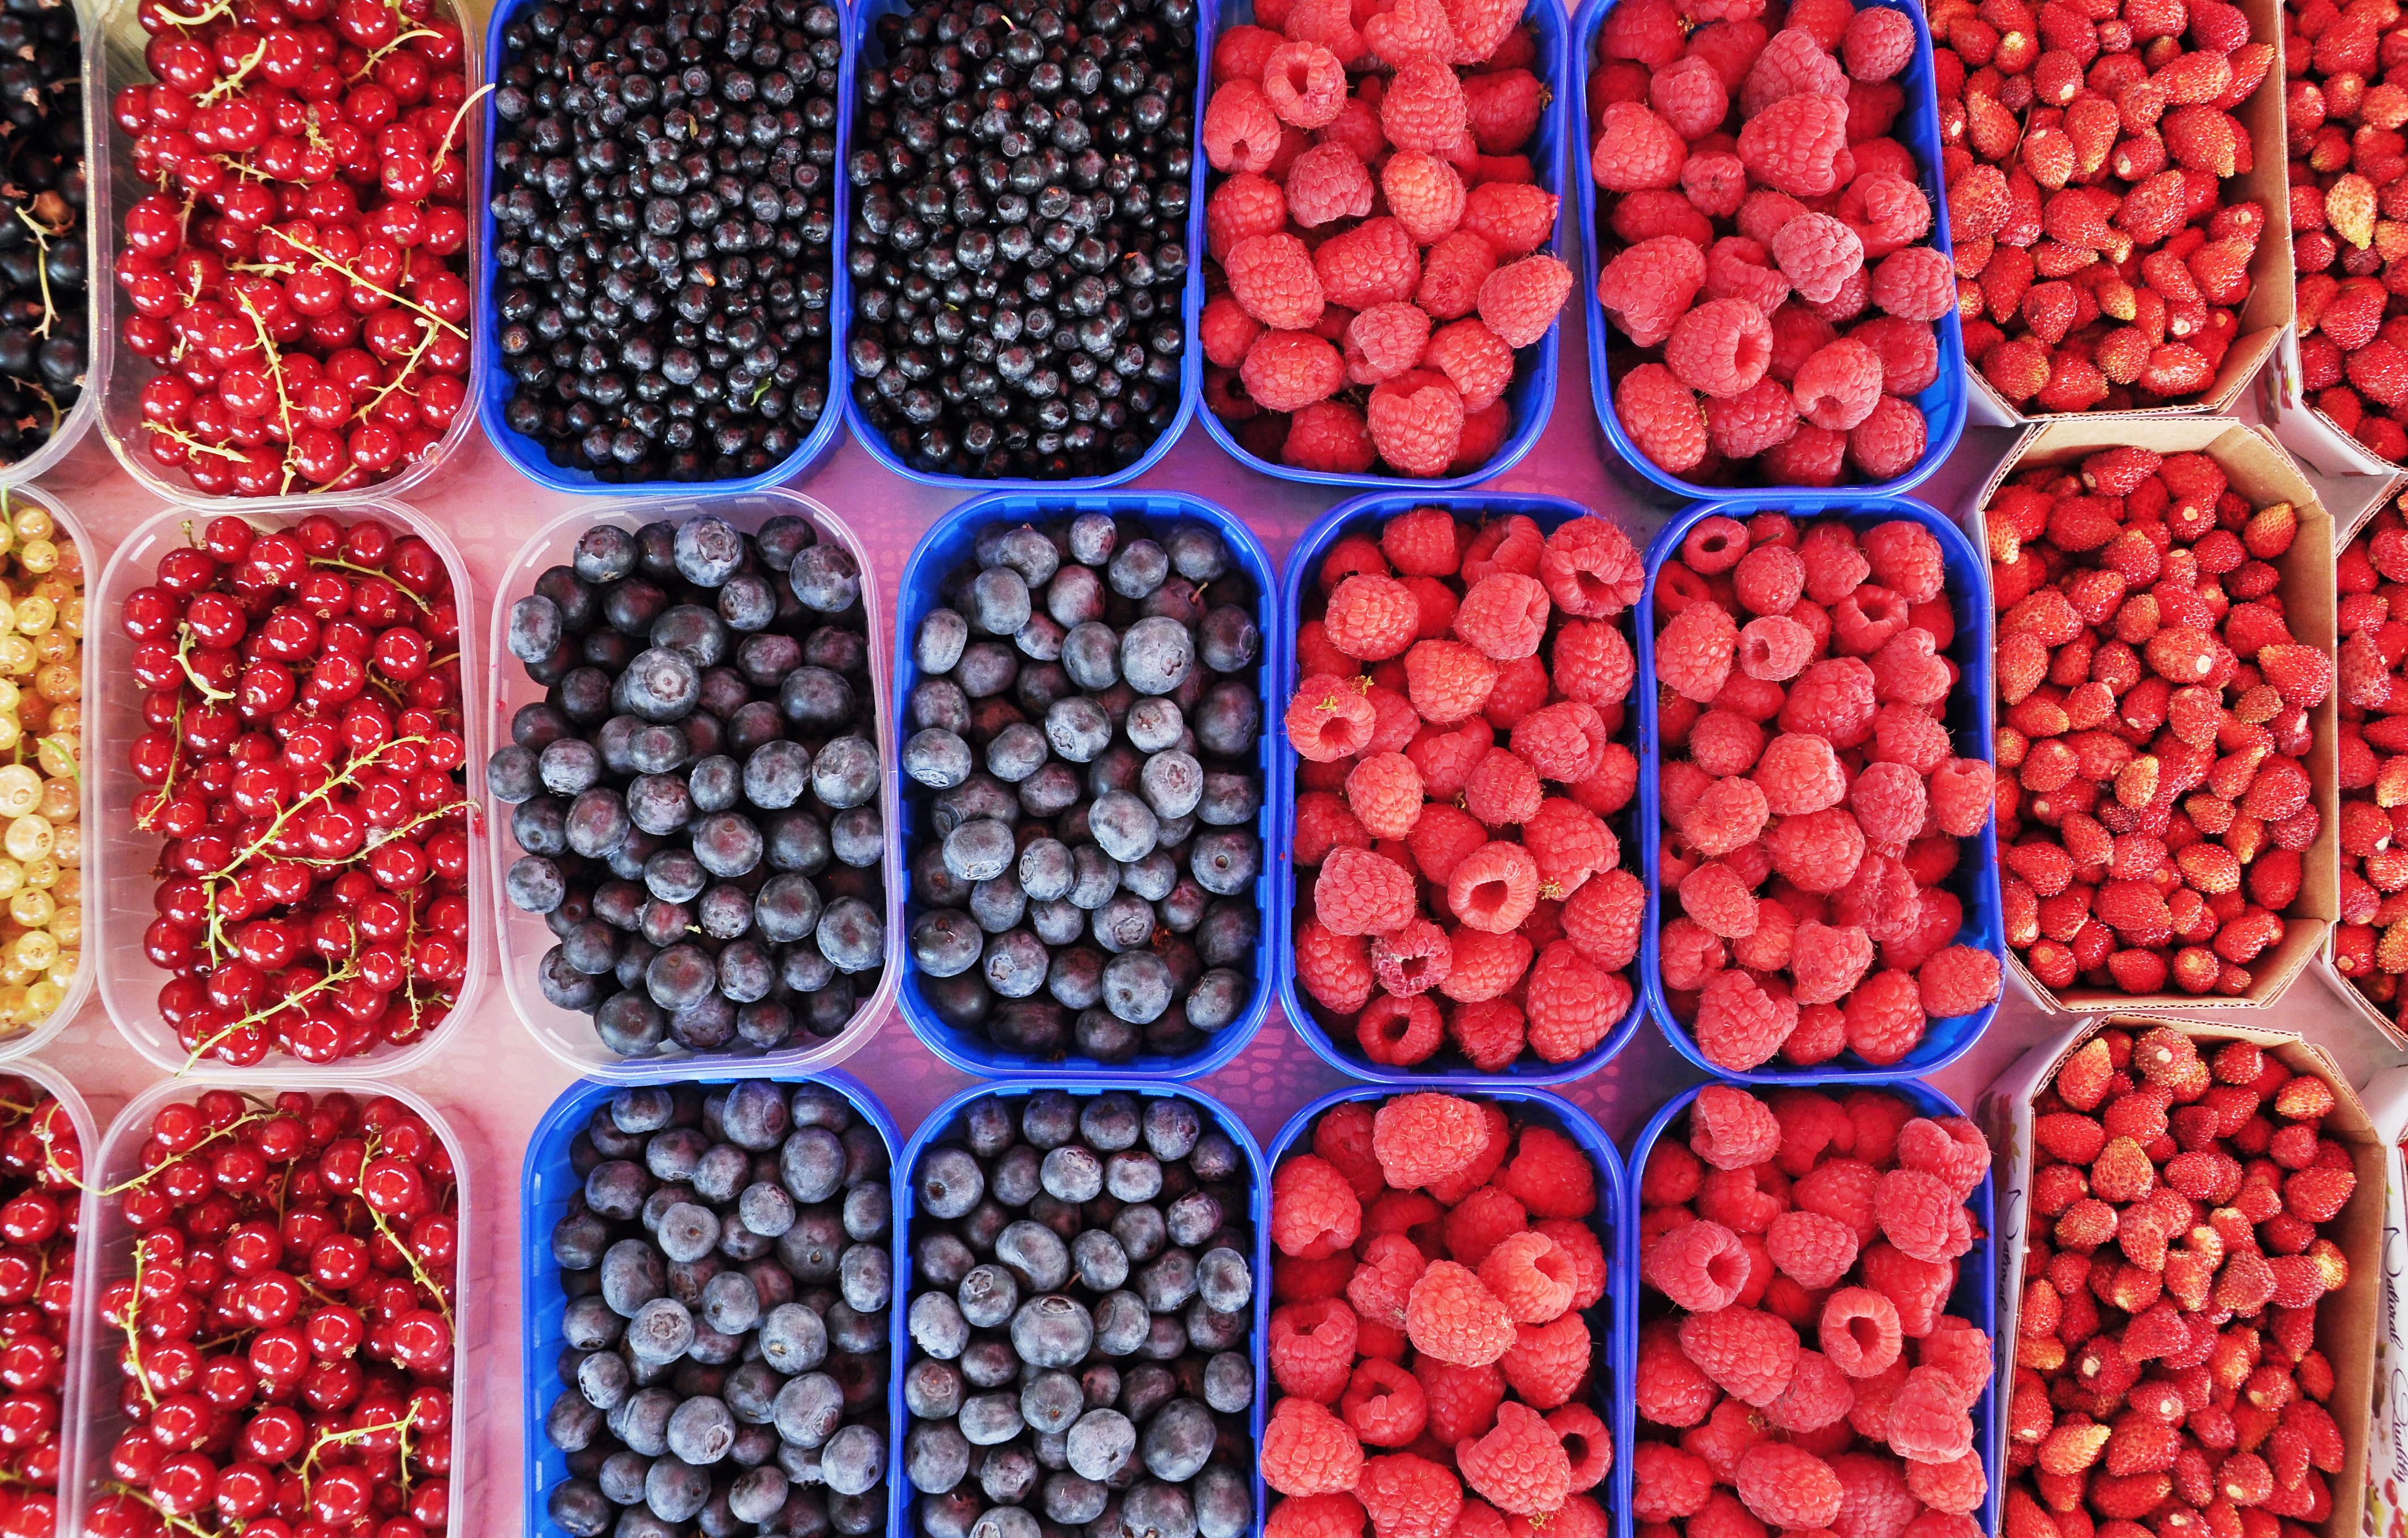 flat lay photography of boxes of berries